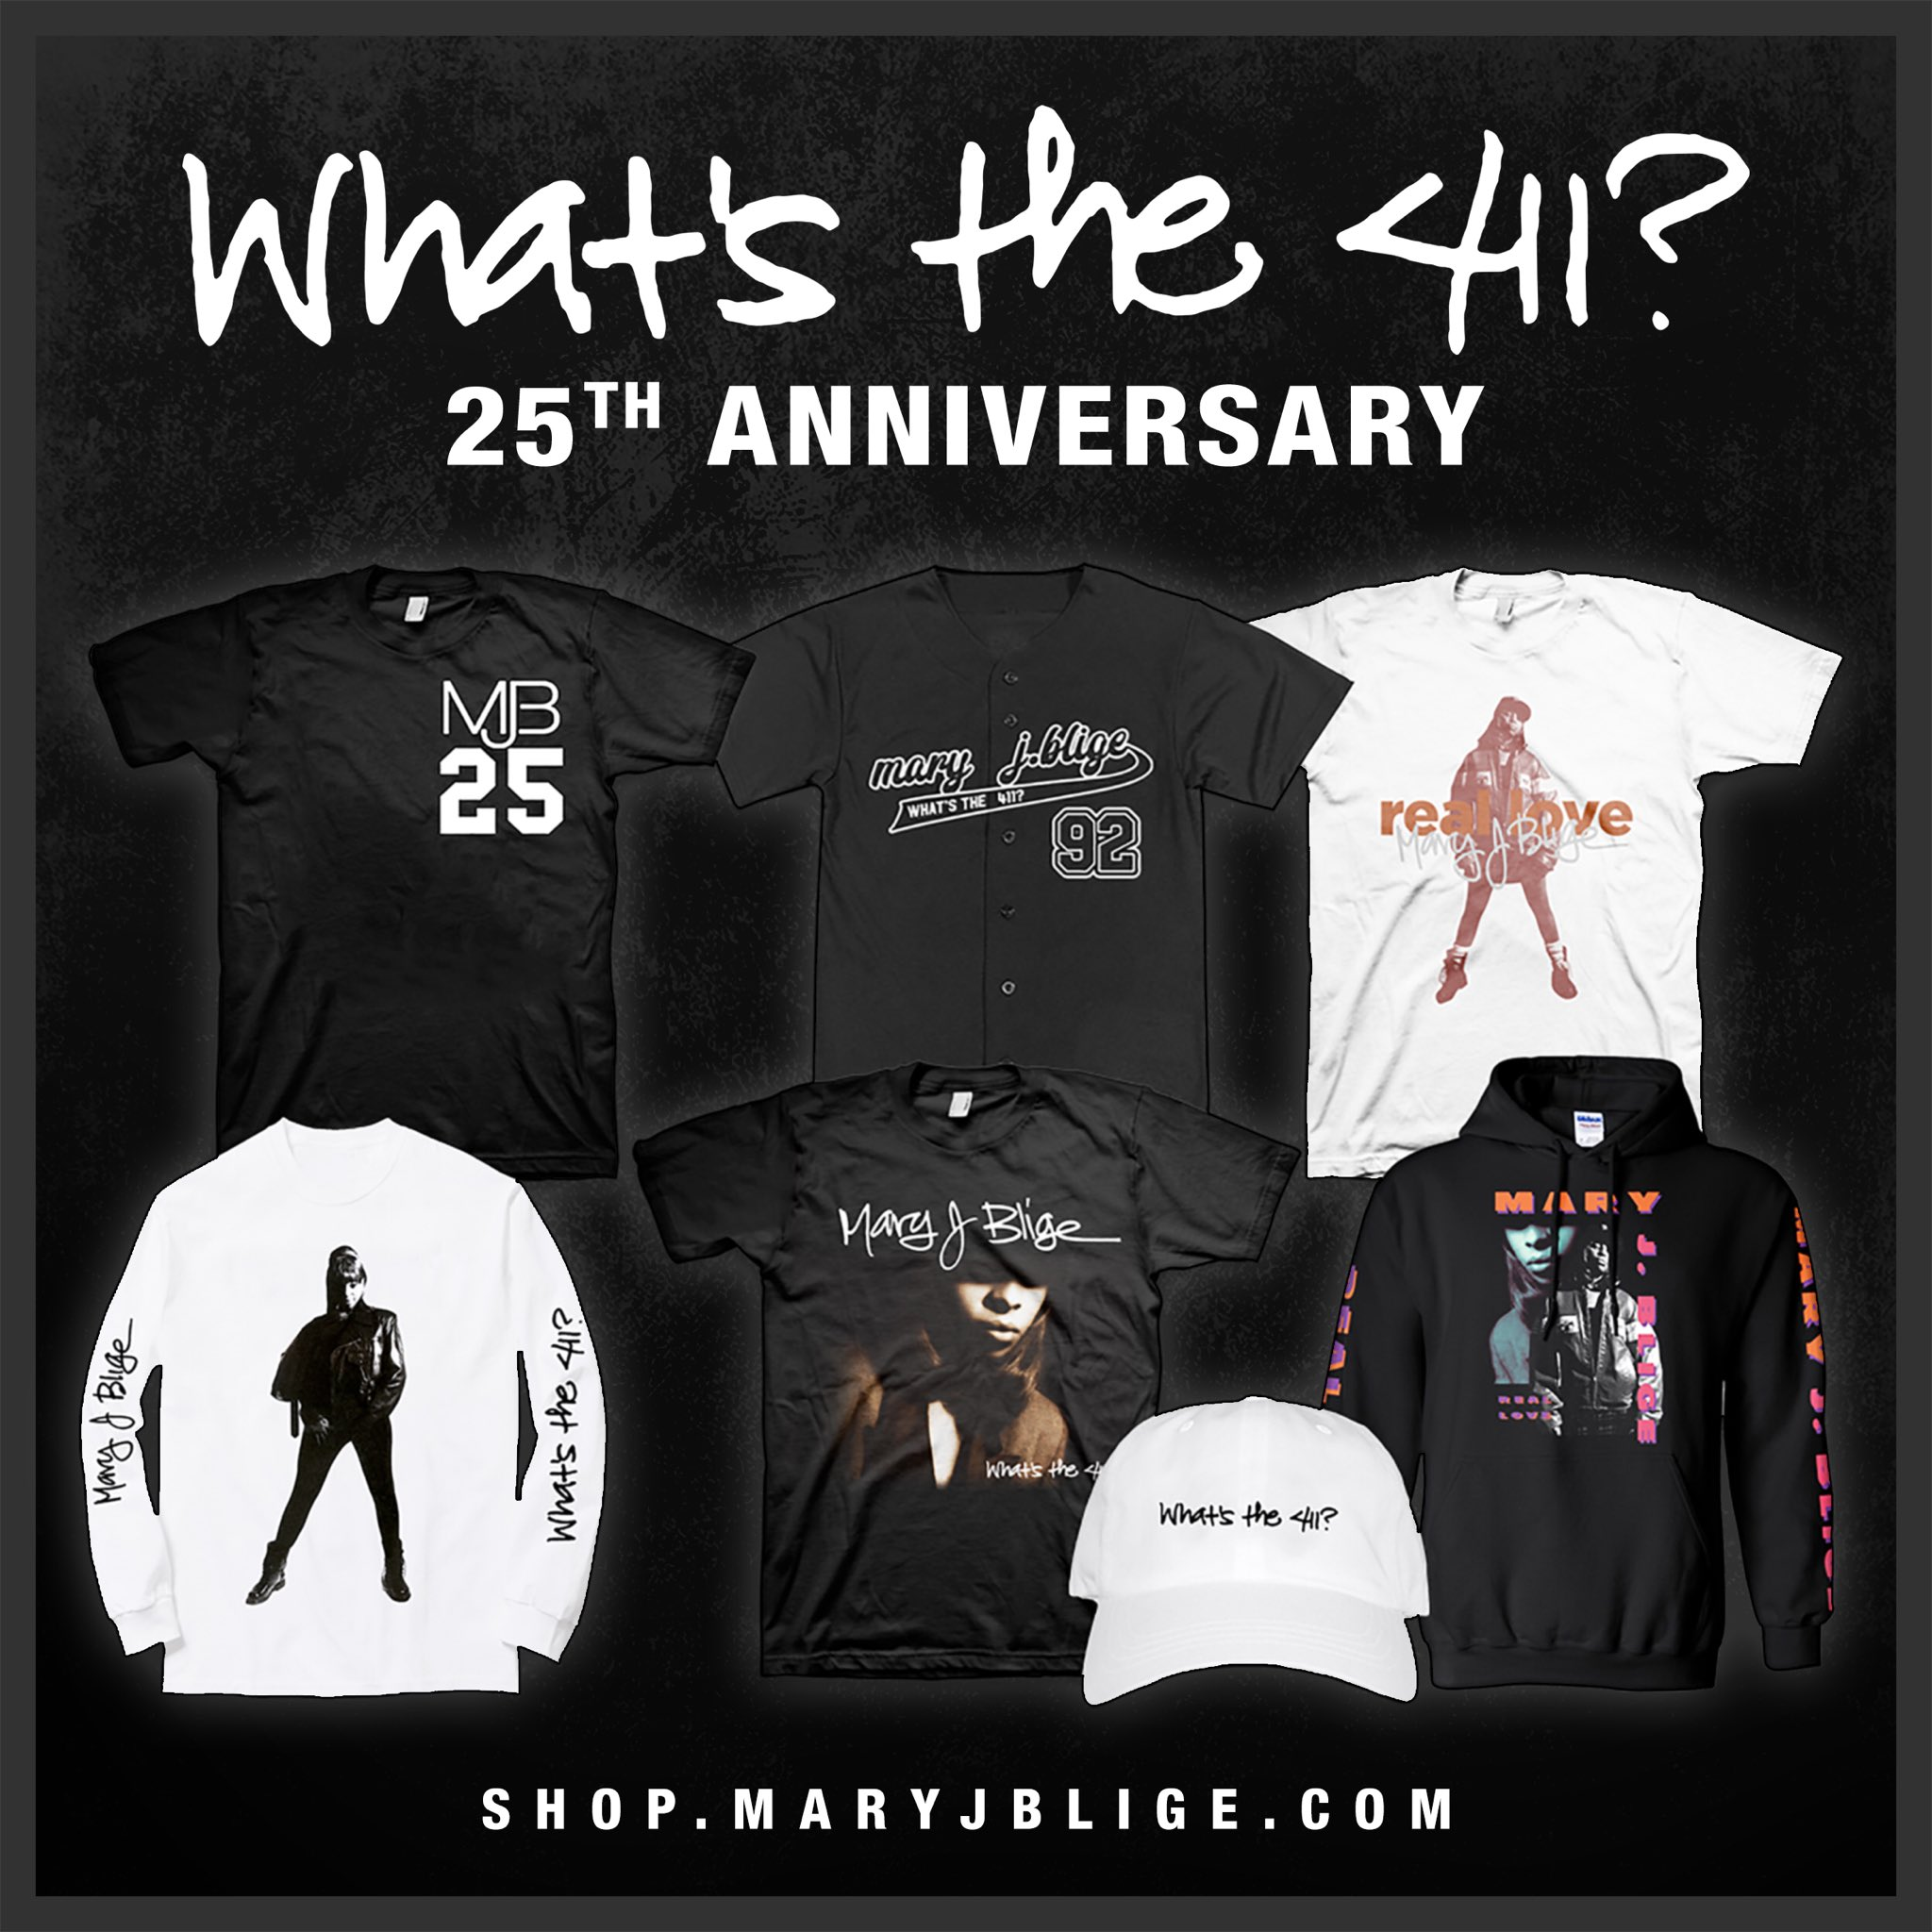 It's a celebration!! Get your #WhatsThe411 limited edition merchandise at https://t.co/ed1MYOmLEJ #MJB25 https://t.co/BuvfgN4tn3